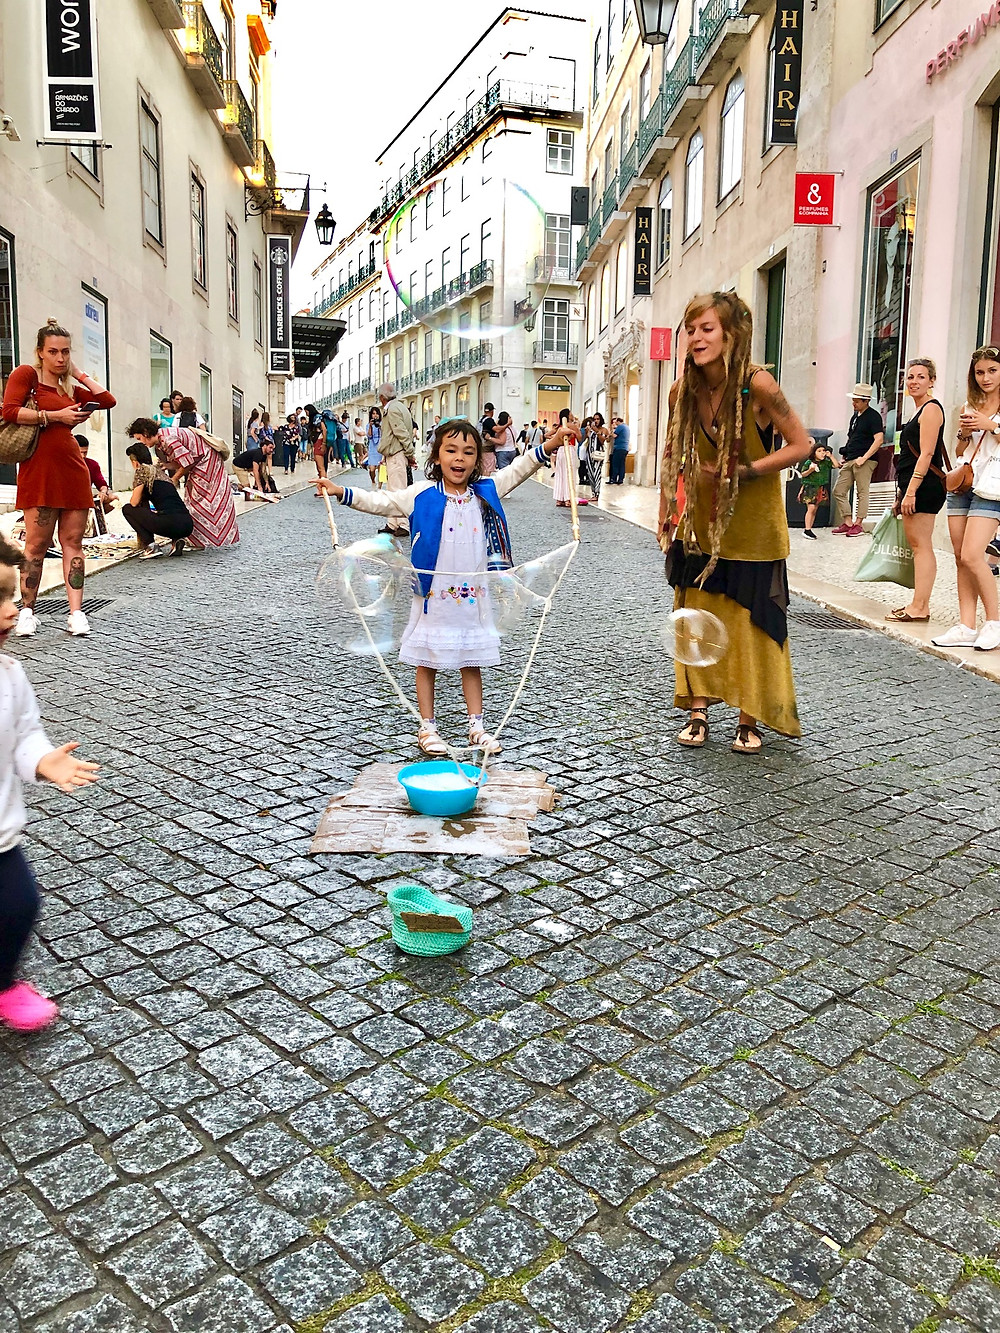 Curious G and Me, Portugal with kids, 4 day Lisbon itinerary, Summer travel with kids, Family travel guide, Sintra with kids, colorful Portugal, colorful Lisbon, photogenic Lisbon, photogenic Portugal, Lisbon with kids, day trip to Sintra, Chiado, Chiado with kids